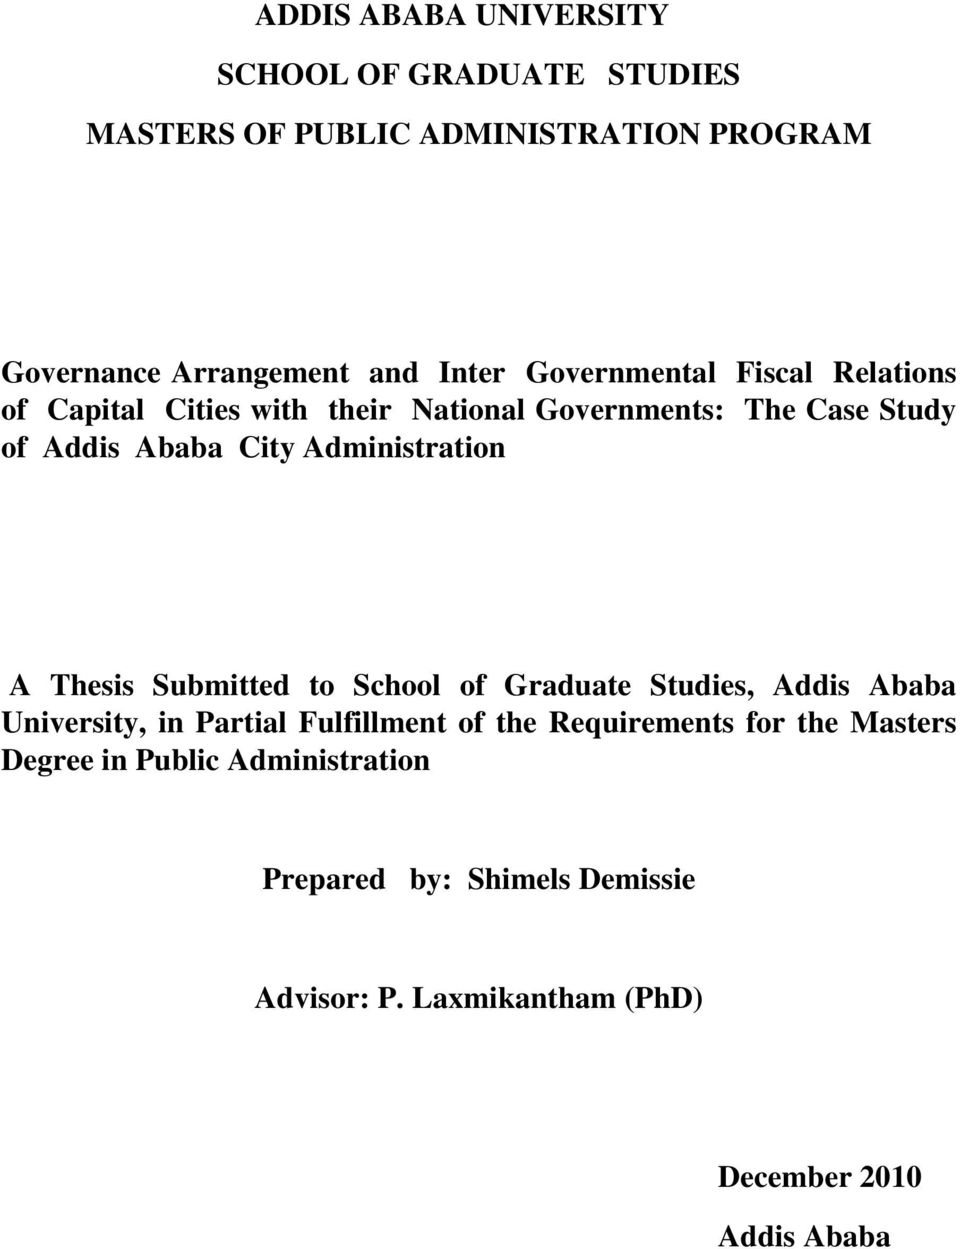 ADDIS ABABA UNIVERSITY SCHOOL OF GRADUATE STUDIES MASTERS OF PUBLIC